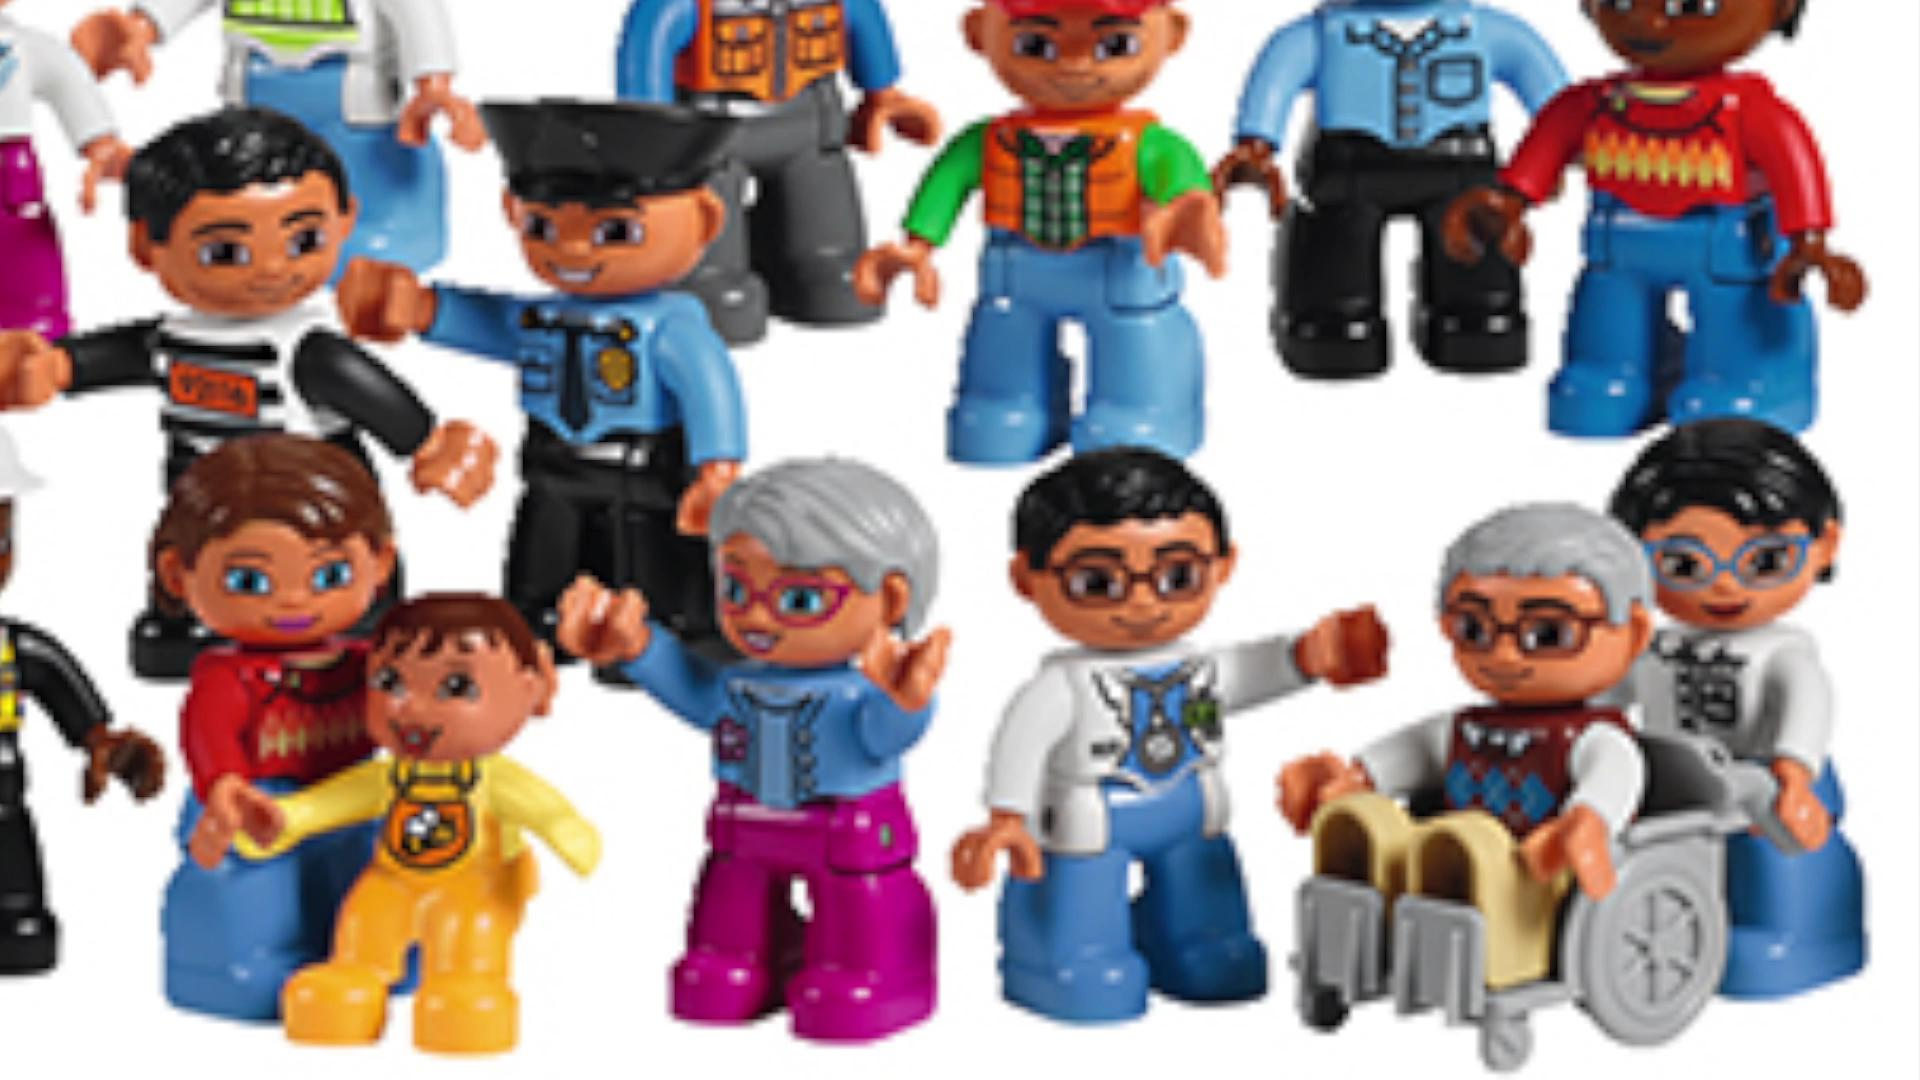 Parents outraged over new LEGO figurine